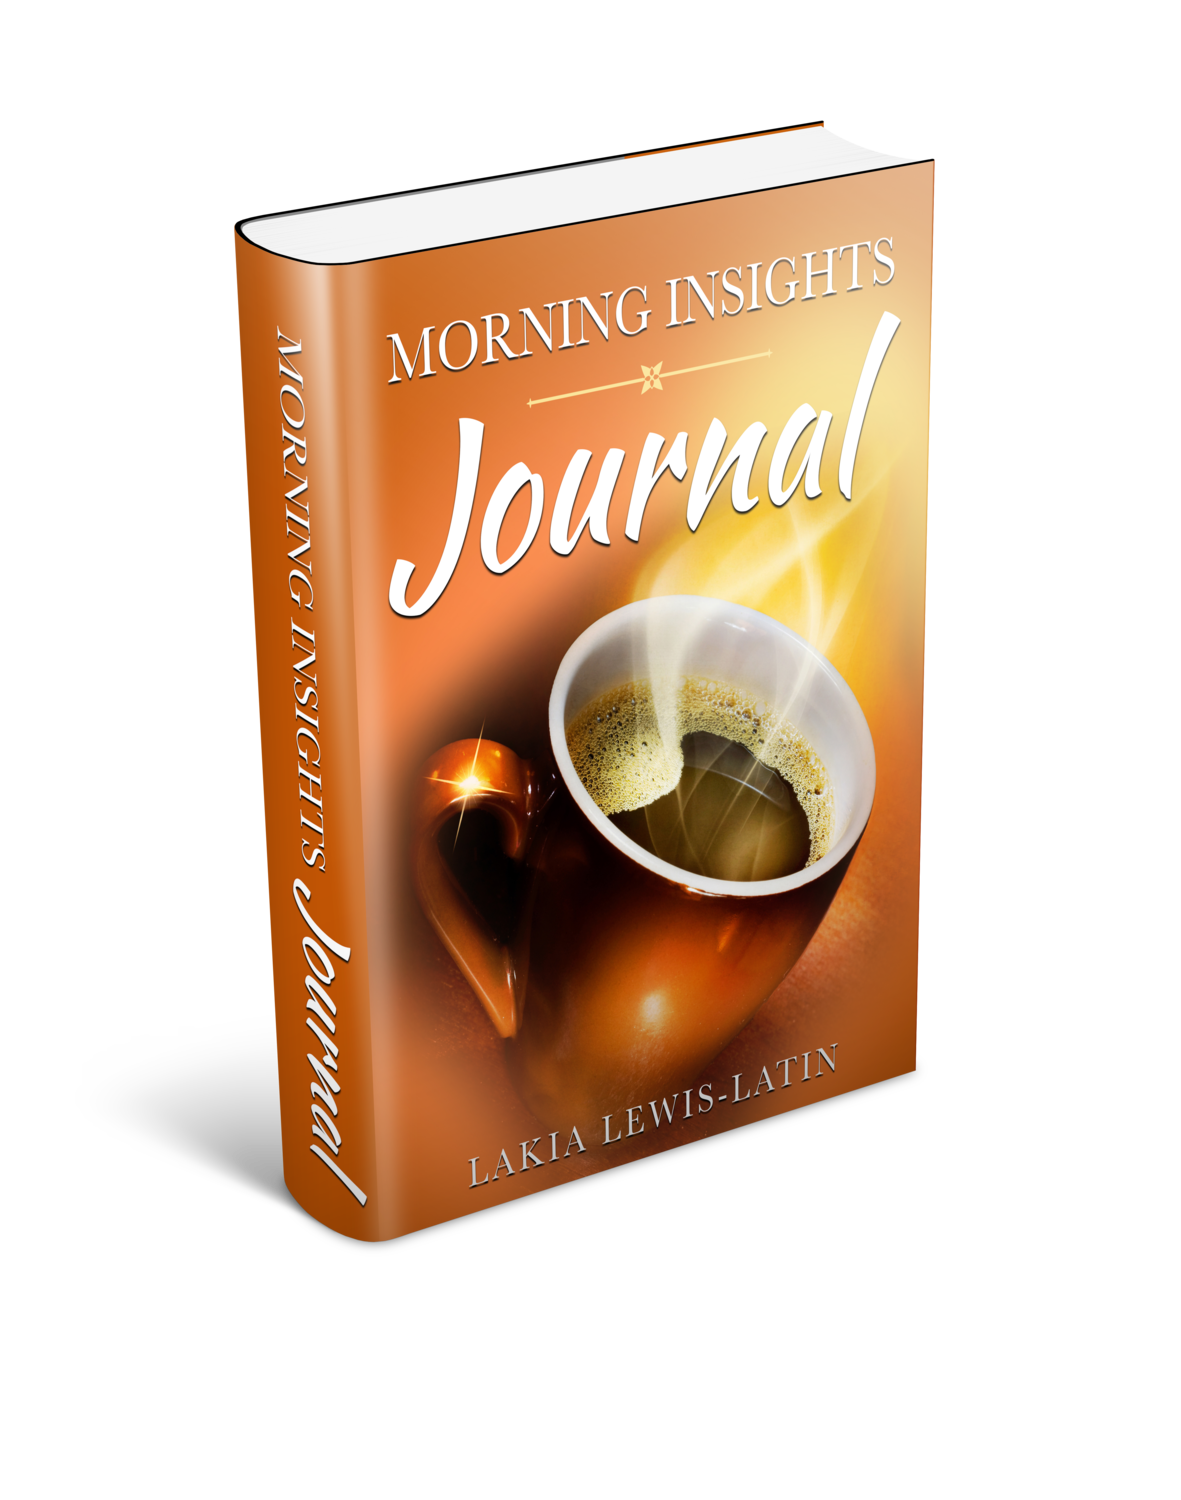 Morning Insights Journal